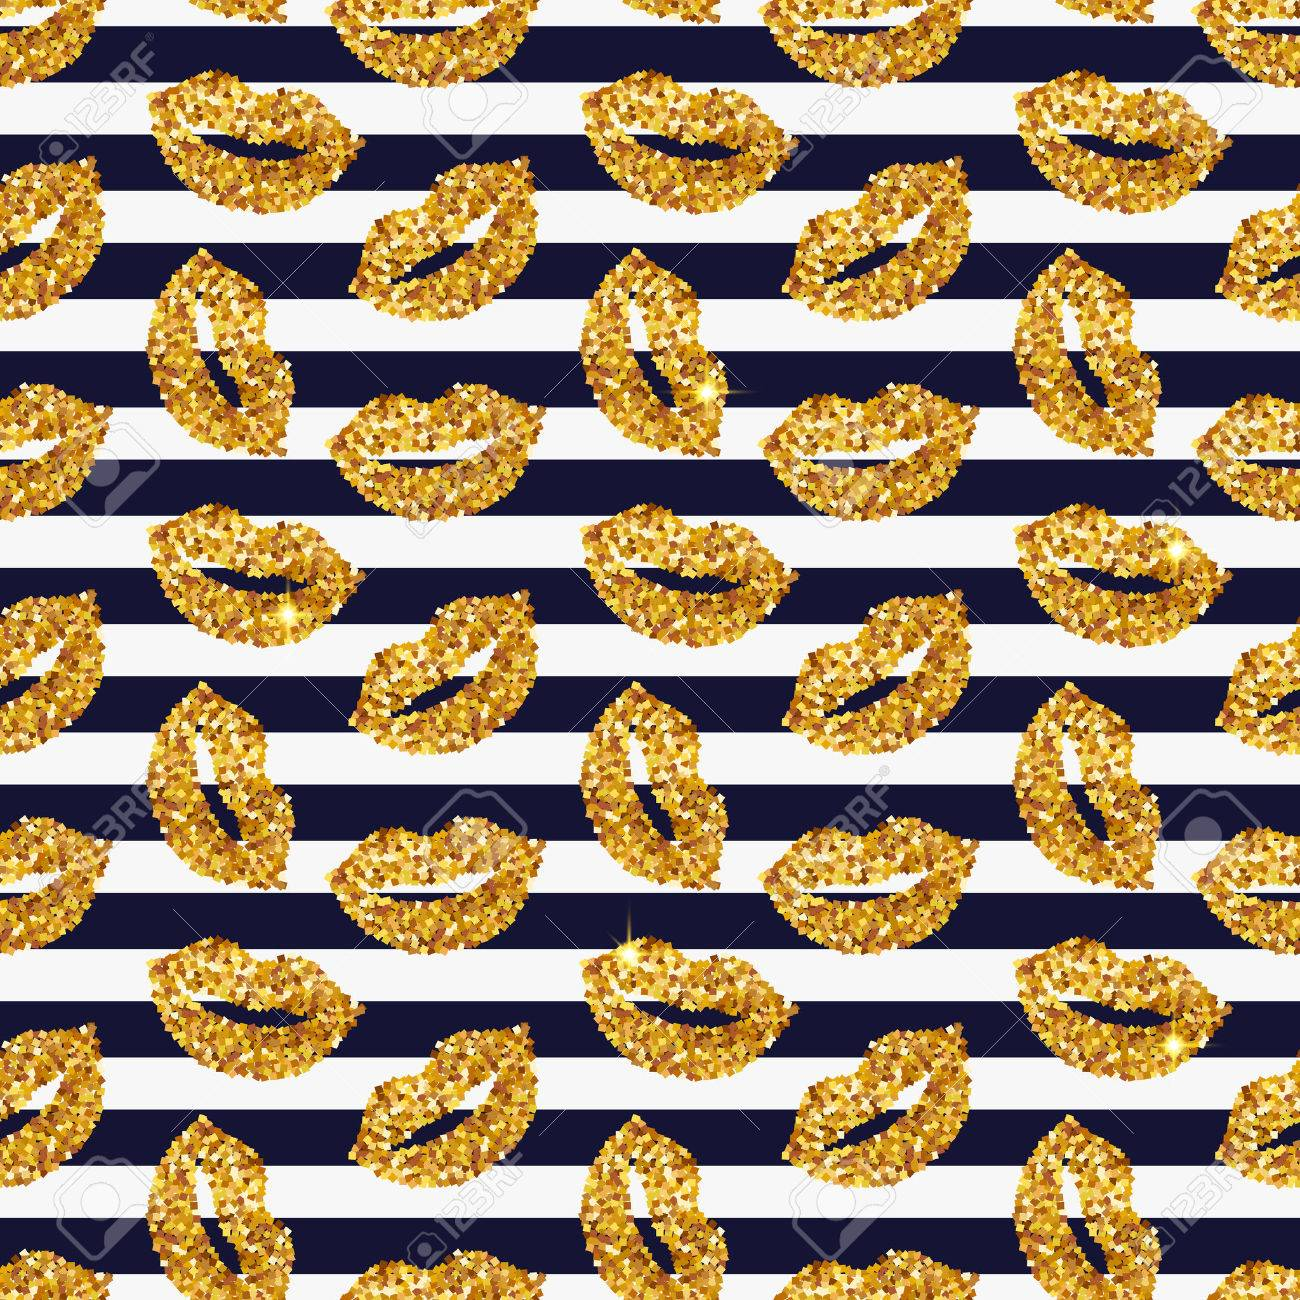 Striped background with gold glittering lips. Seamless pattern. Vector illustration. - 79428762